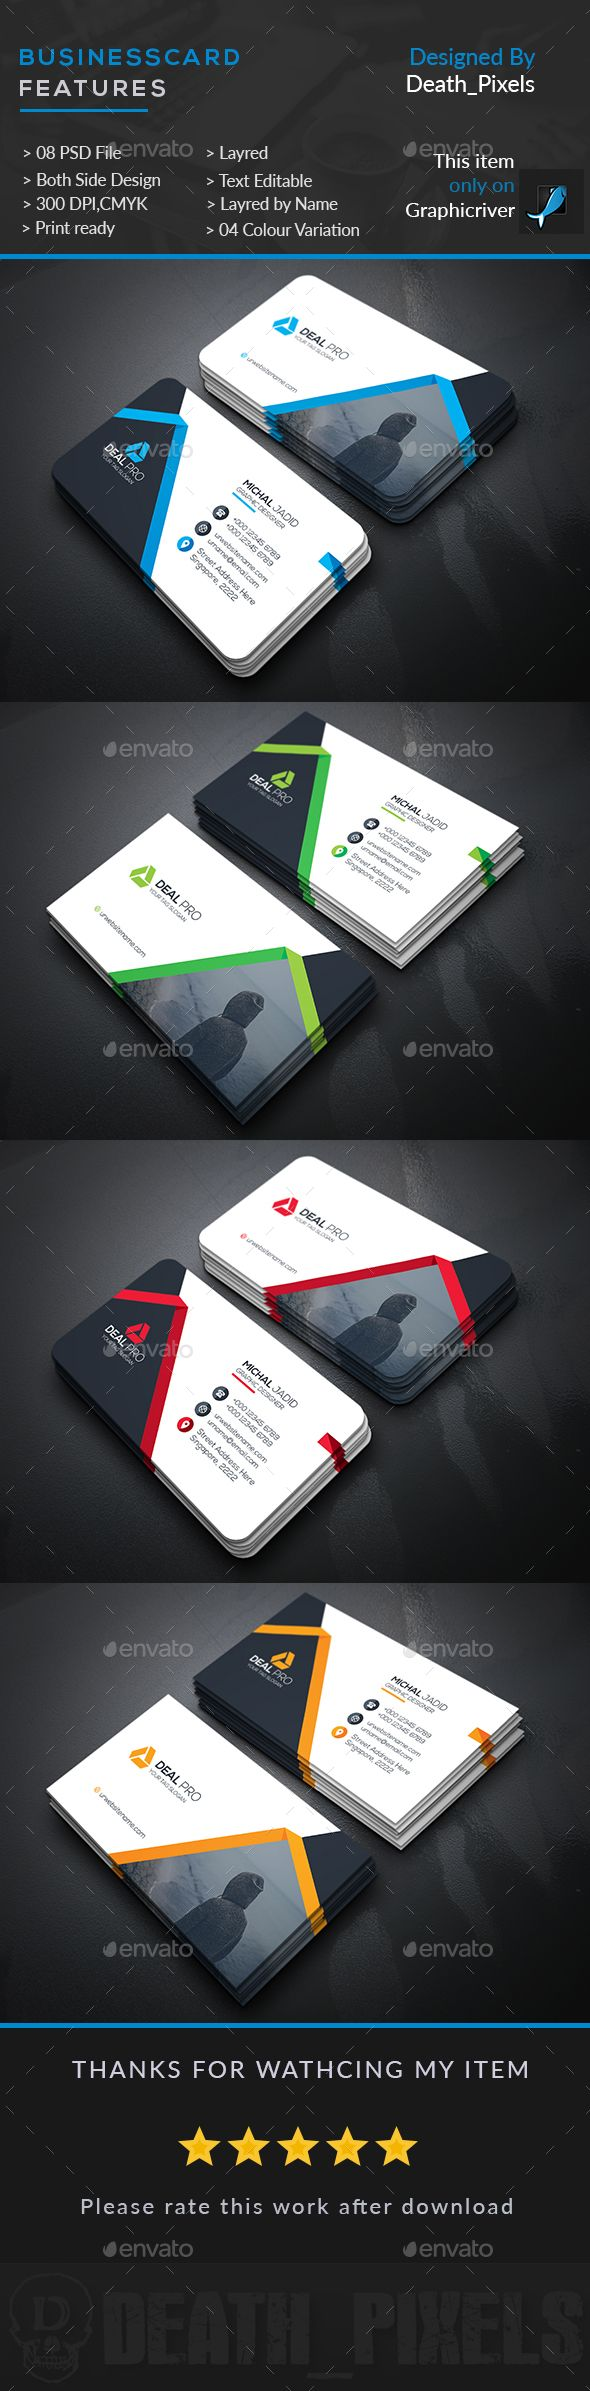 17 Best Business Card Bazaar Images By Introspec Marketing On